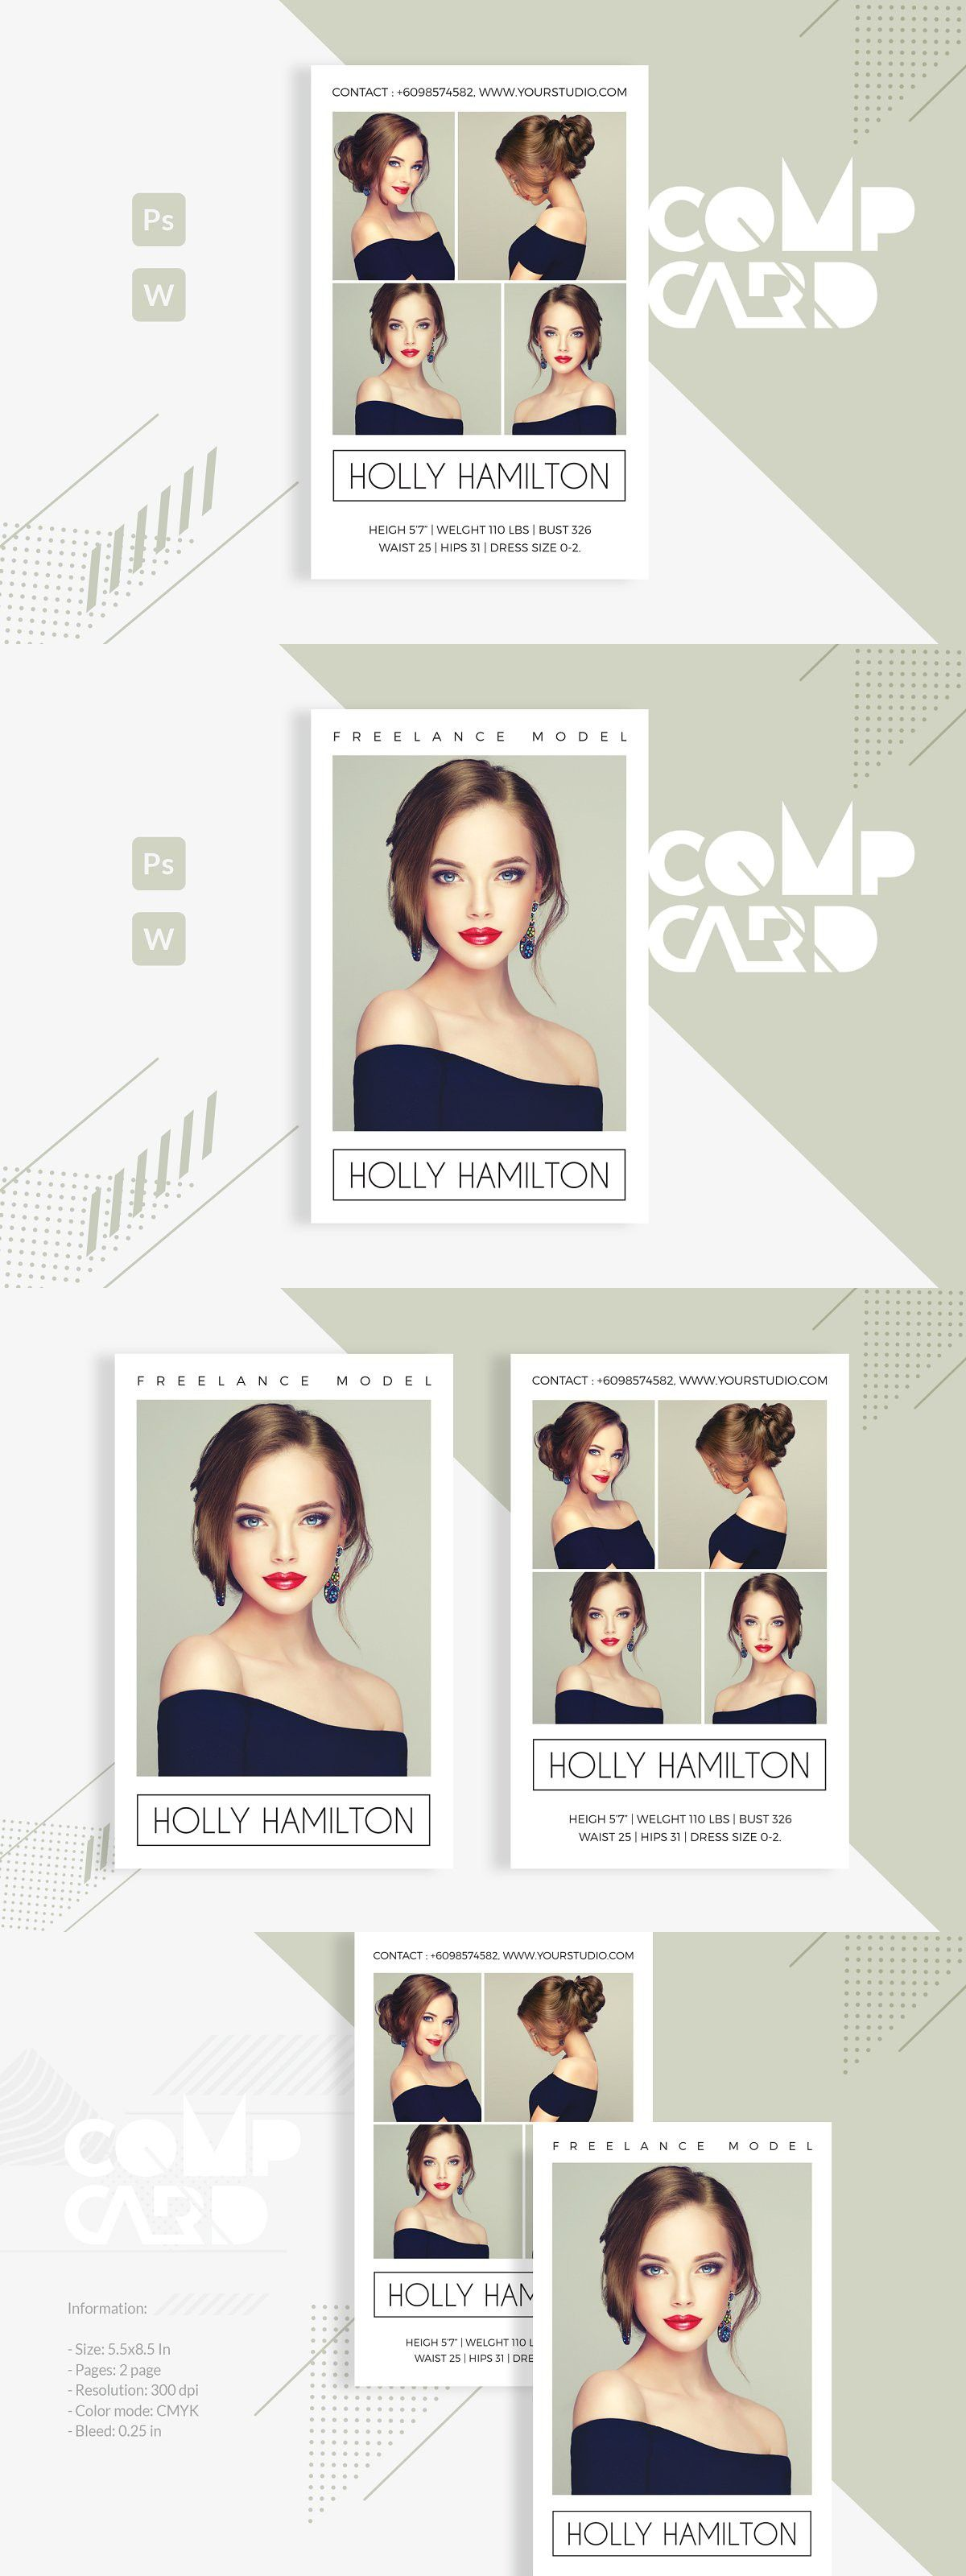 Pin On Creative Card Templates